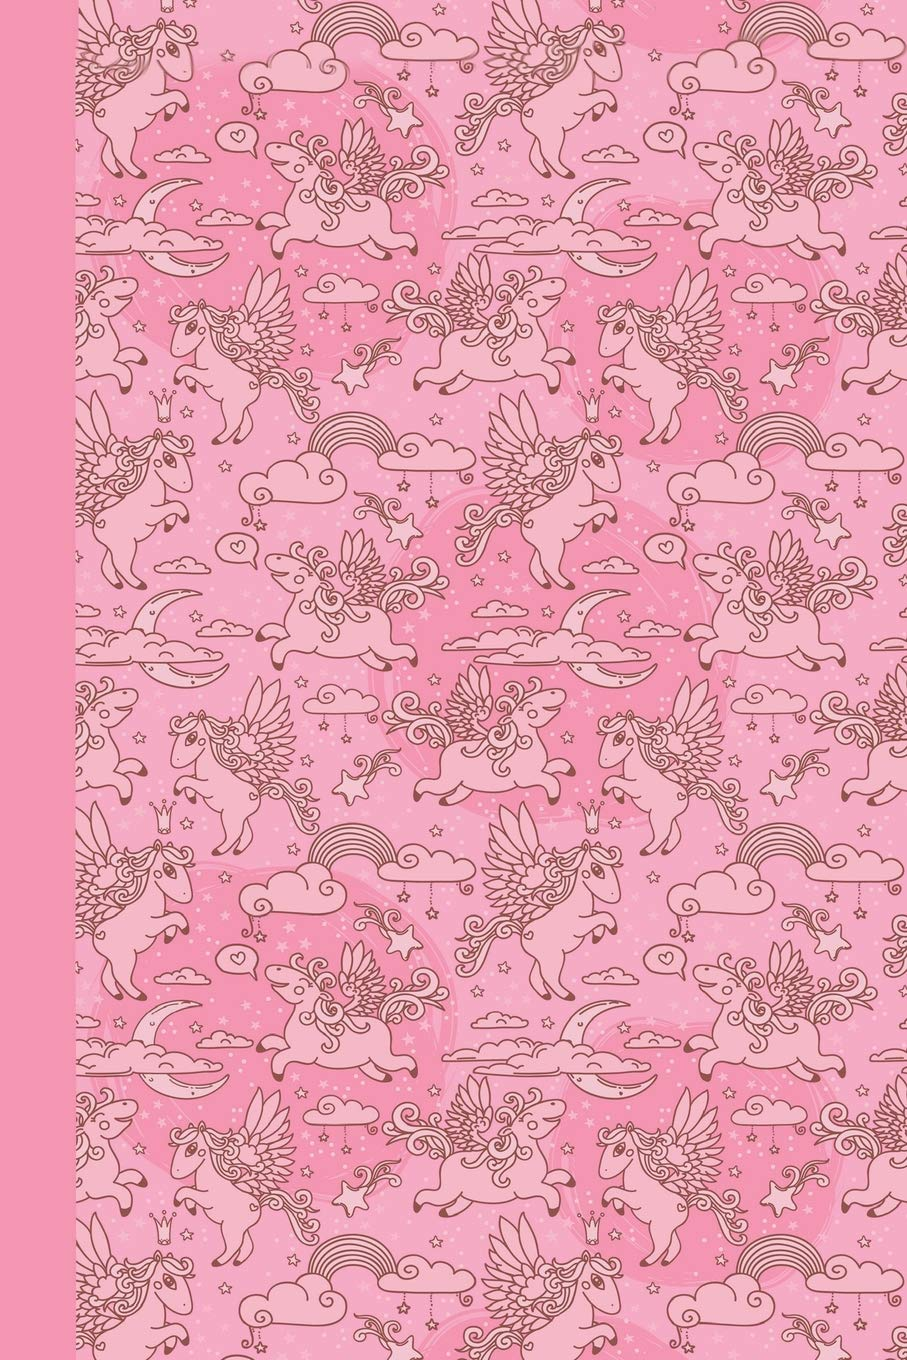 Read Online Sketchbook: Baby Pegasus (Pink) 6x9 - BLANK JOURNAL WITH NO LINES - Journal notebook with unlined pages for drawing and writing on blank paper (Baby Animals Sketchbook Series) ebook